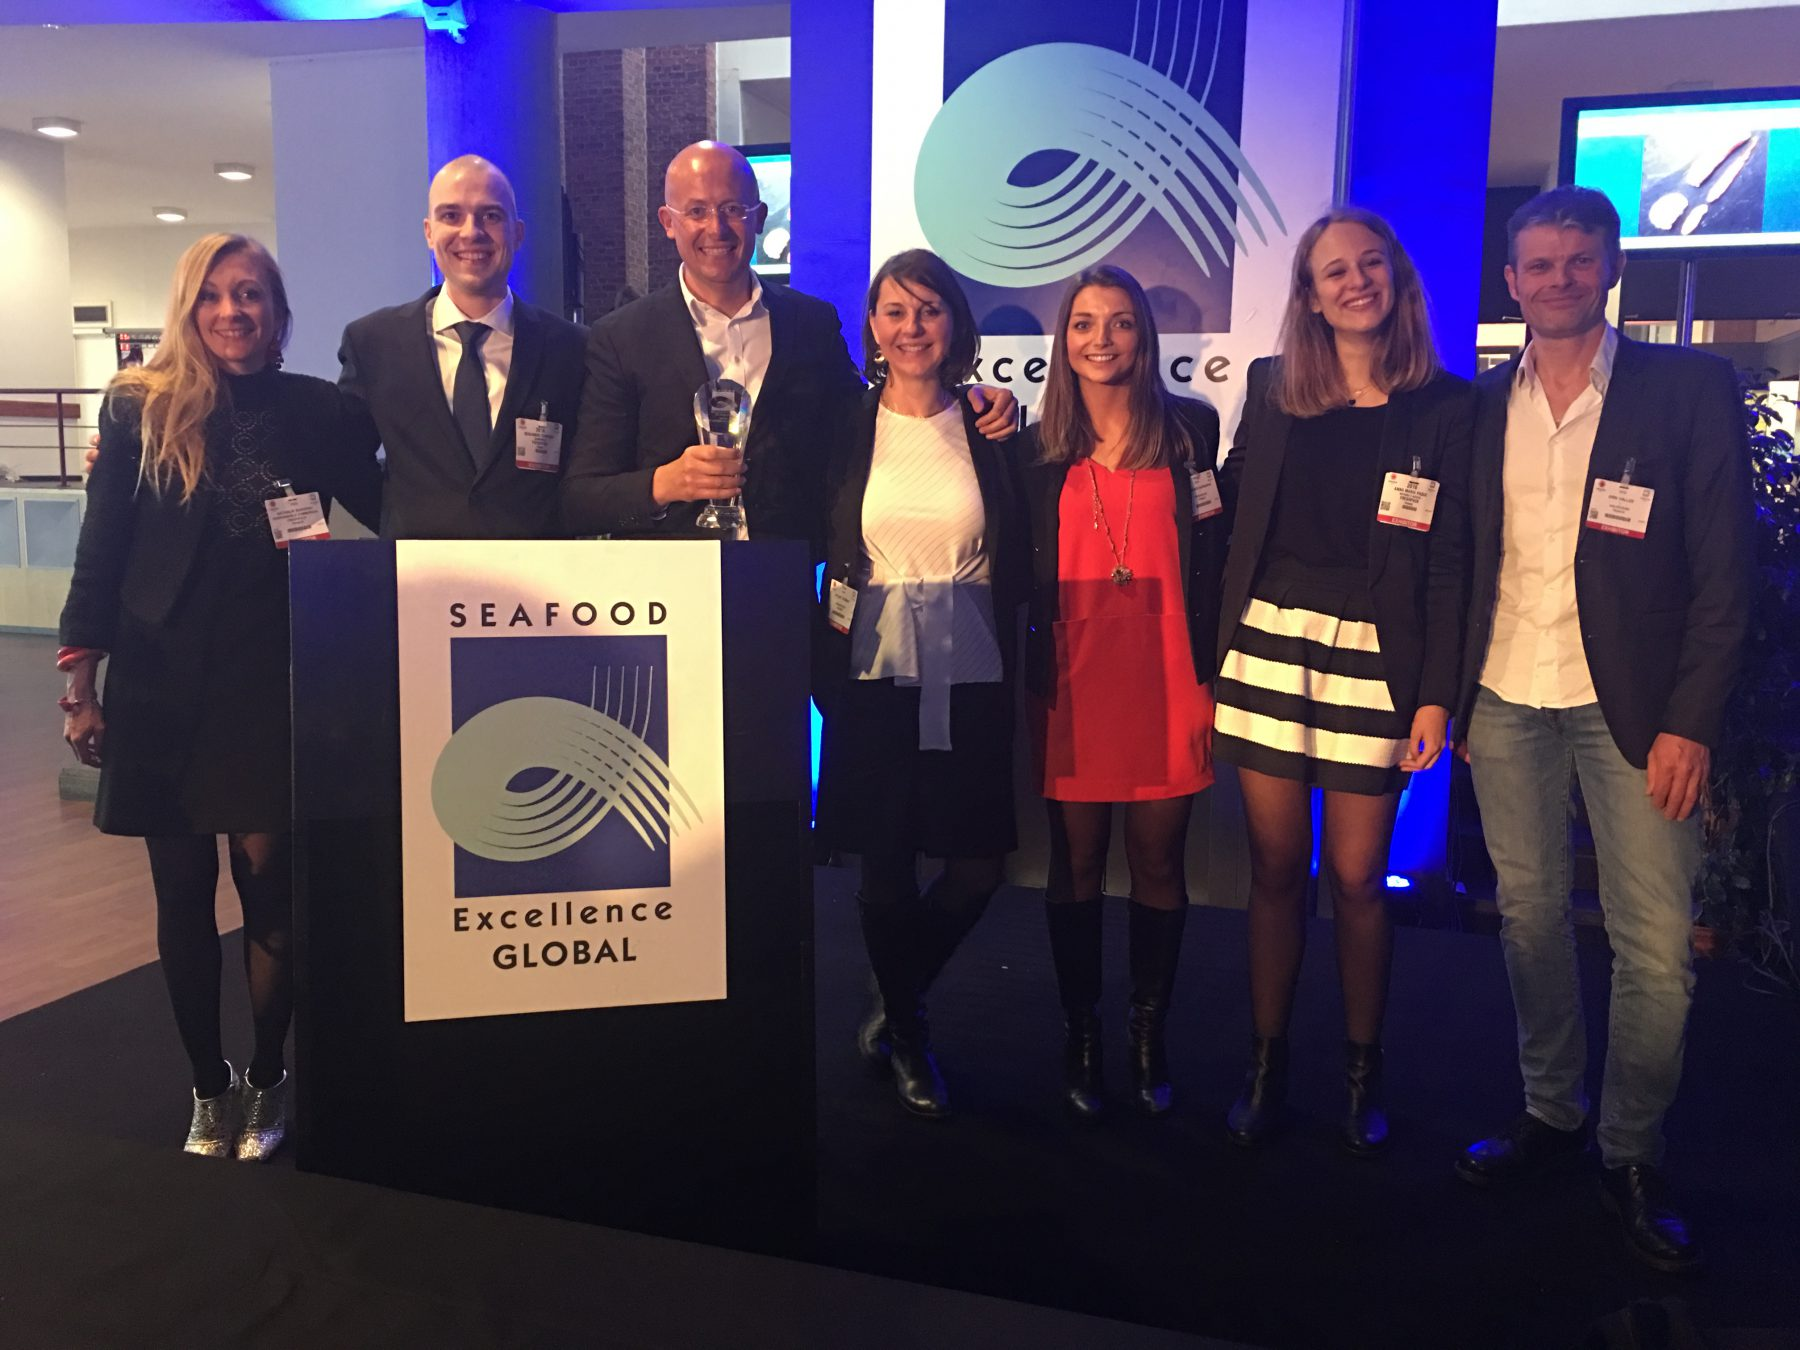 FRESHPACK REMPORTE LE SEAFOOD EXCELLENCE AWARDS AVEC SA CHAIR DE KING CRAB CRU | FRESHPACK